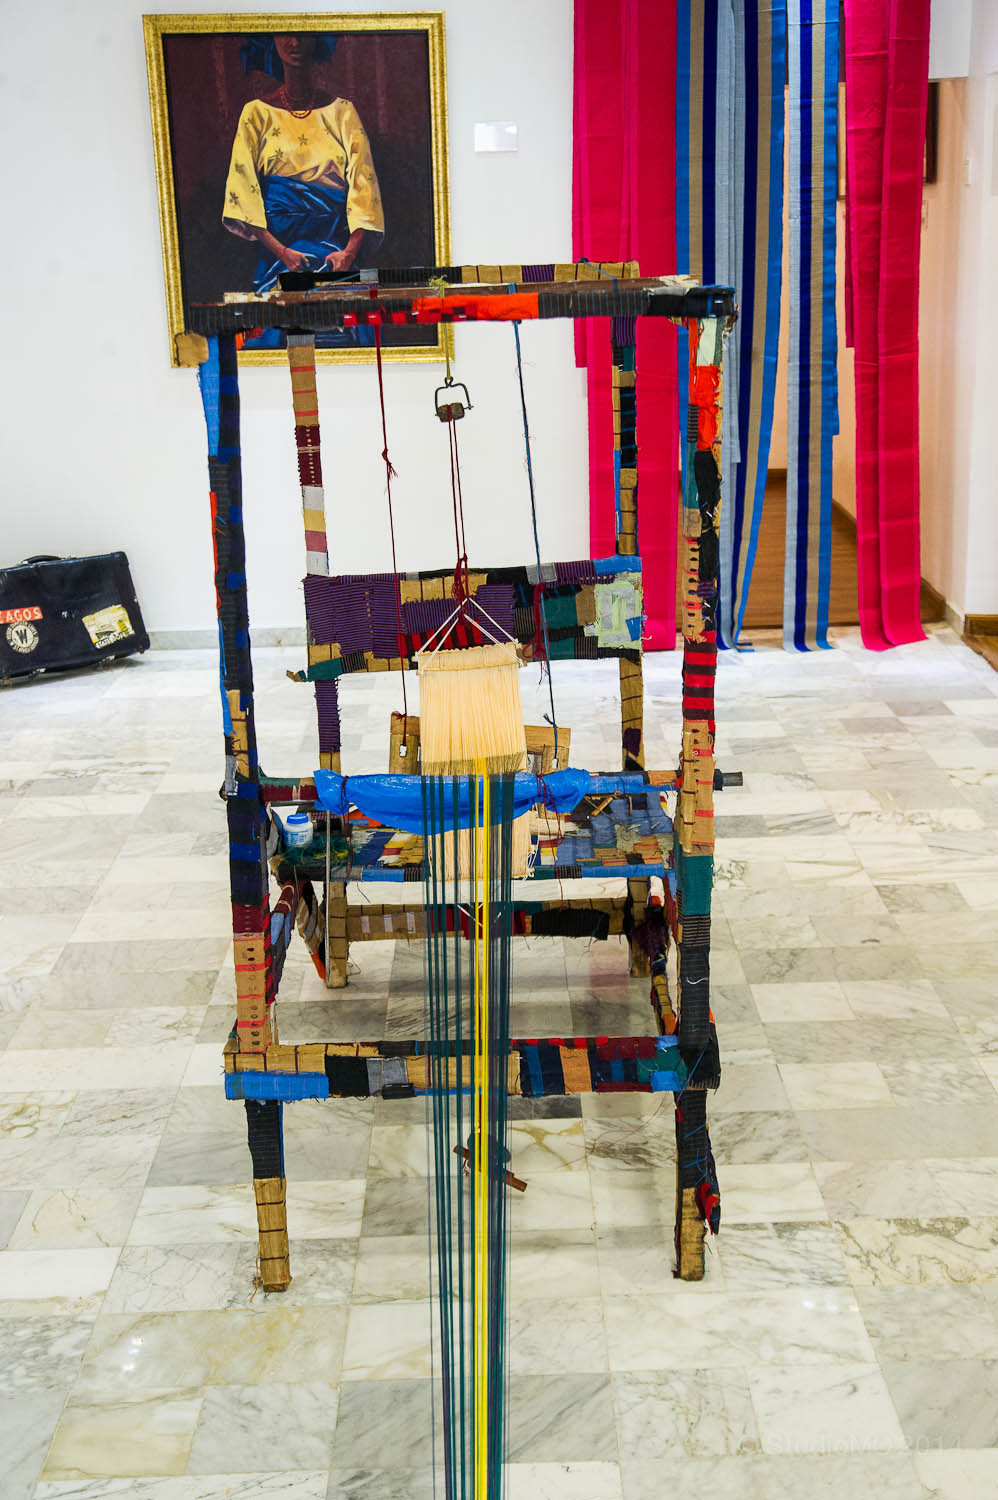 A Traditional Weaving loom